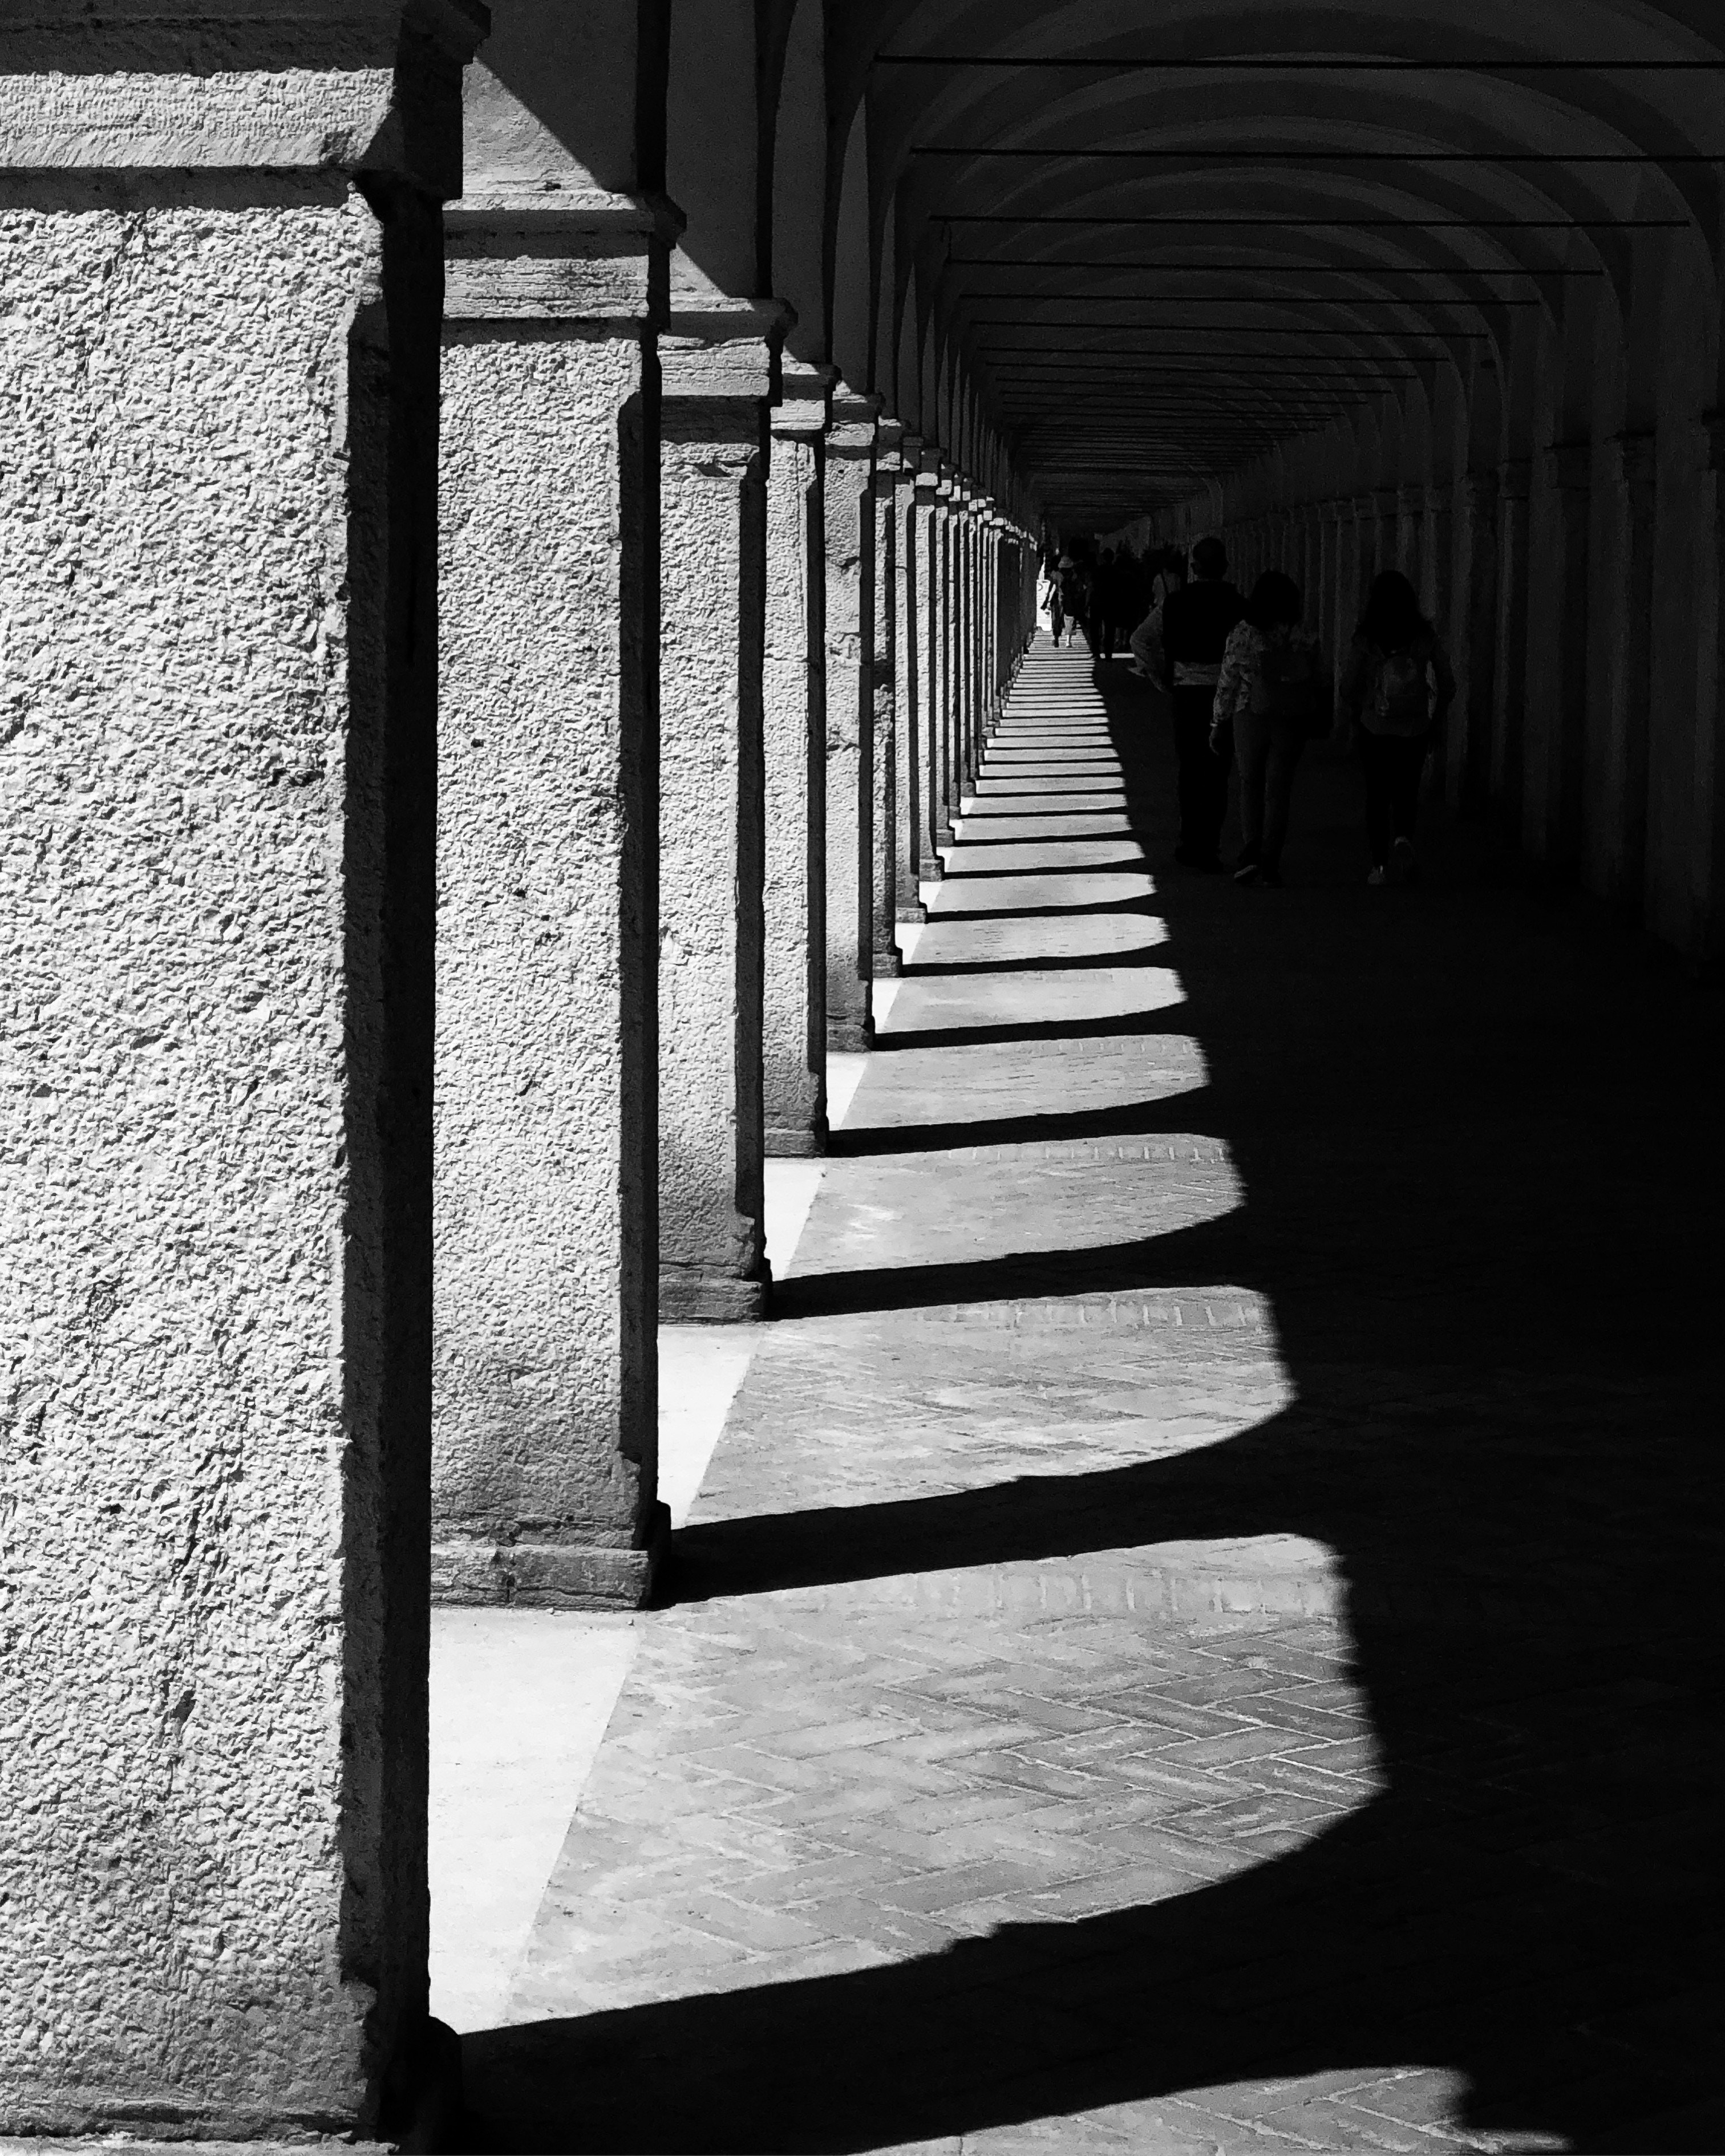 Light and shadow. Photo by [Martino Pietropoli](https://unsplash.com/photos/H8zix6ErdXg?utm_source=unsplash&utm_medium=referral&utm_content=creditCopyText) on [Unsplash](https://unsplash.com/search/photos/shadow-light?utm_source=unsplash&utm_medium=referral&utm_content=creditCopyText)